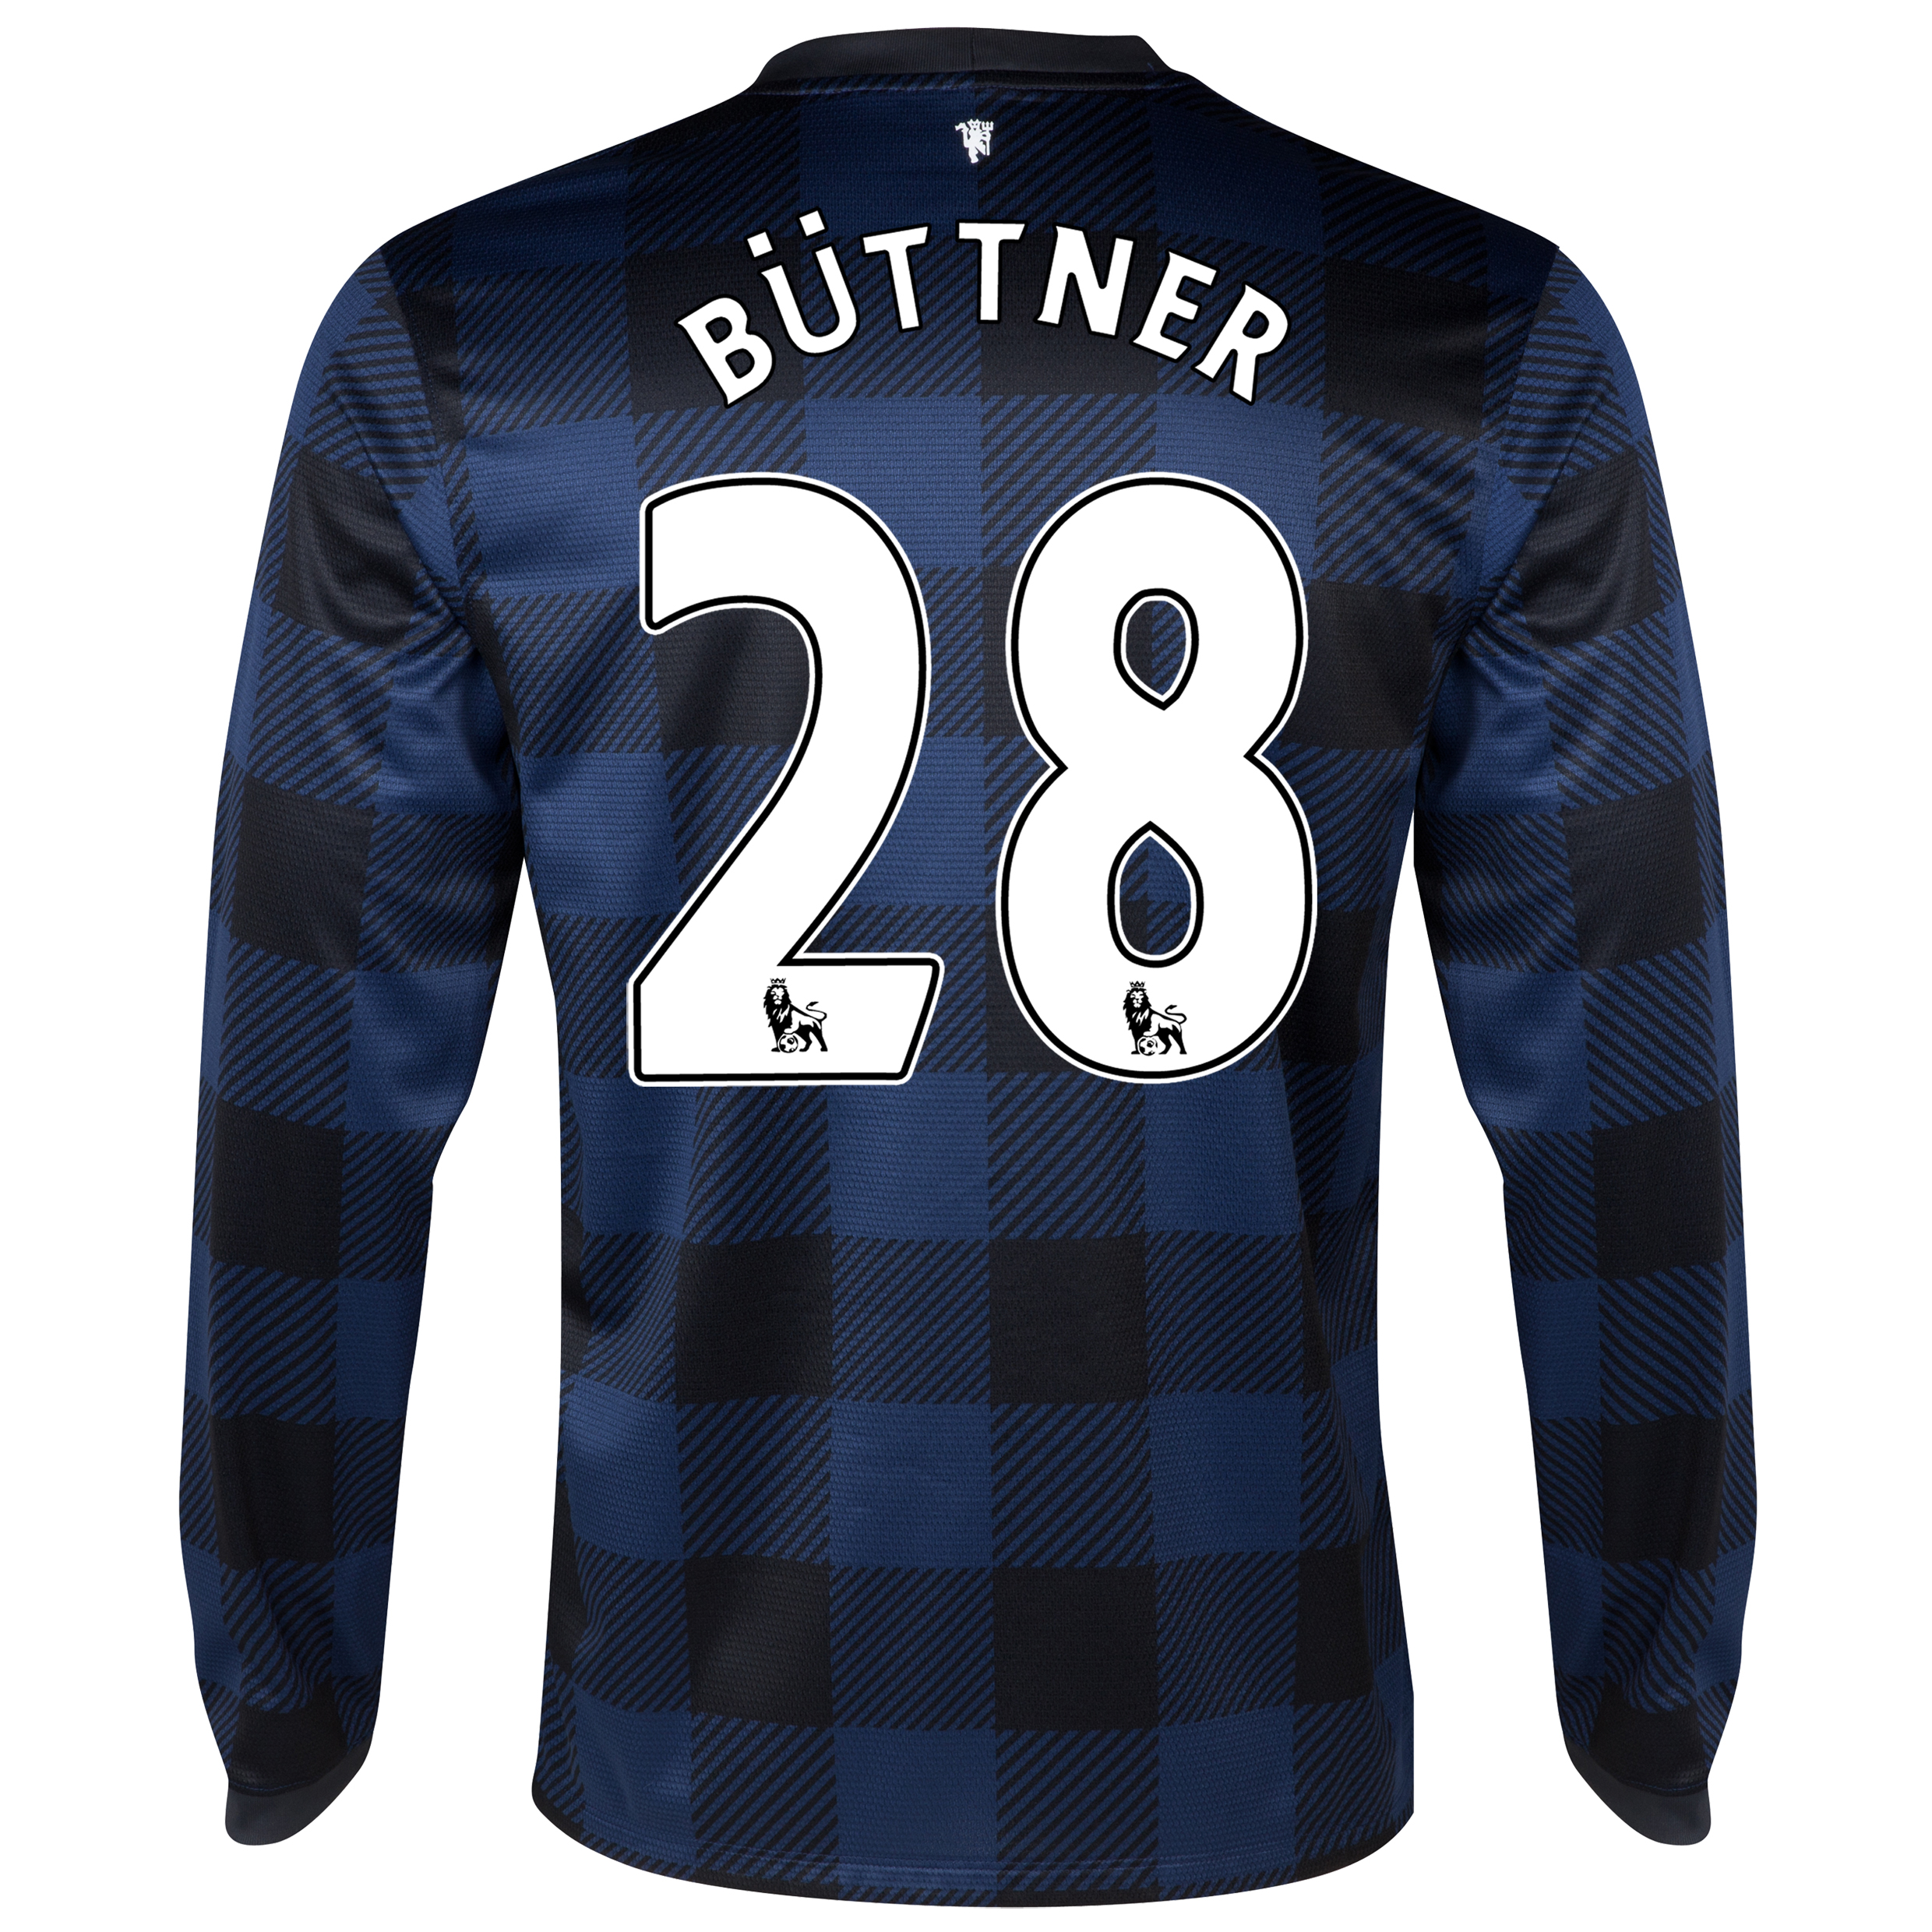 Manchester United Away Shirt 2013/14 - Long Sleeved - Kids with Büttner 28 printing